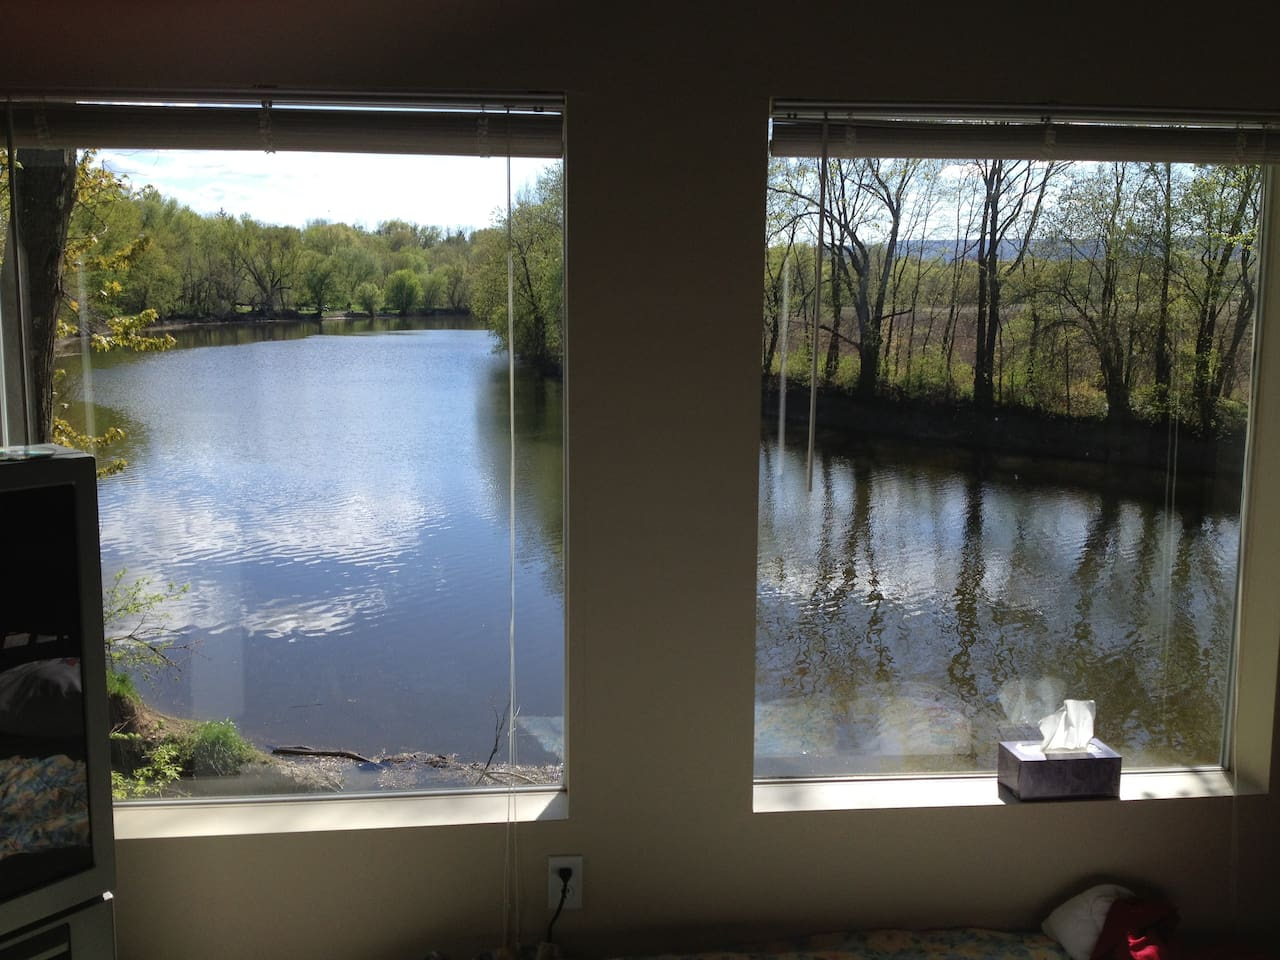 Picture windows in main room provide stunning view of Wallkill River.